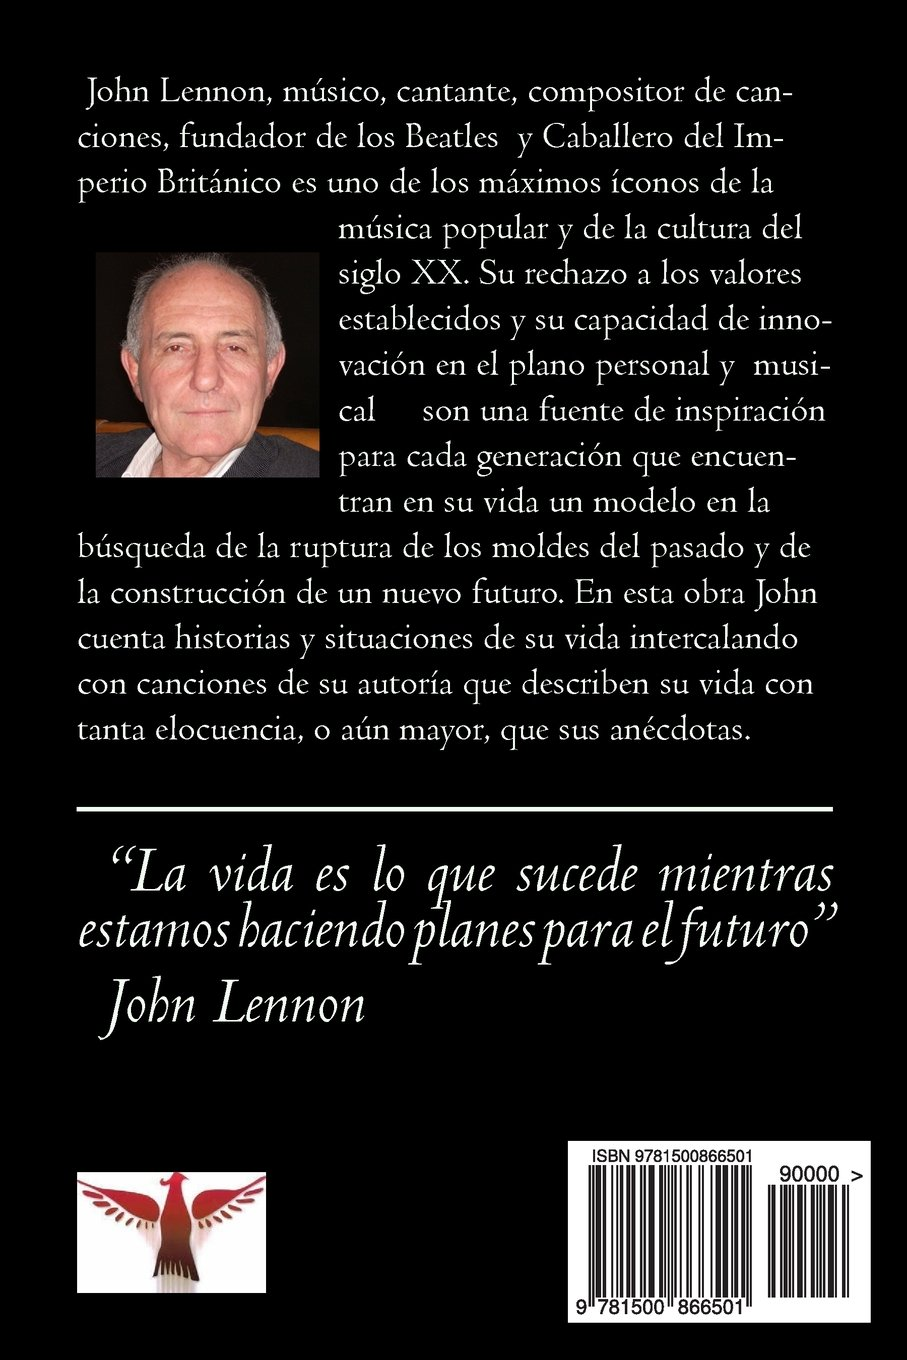 Imagine: Vida y canciones de John Lennon (Biografías de famosos) (Volume 9)  (Spanish Edition): Lazaro Droznes: 9781500866501: Amazon.com: Books